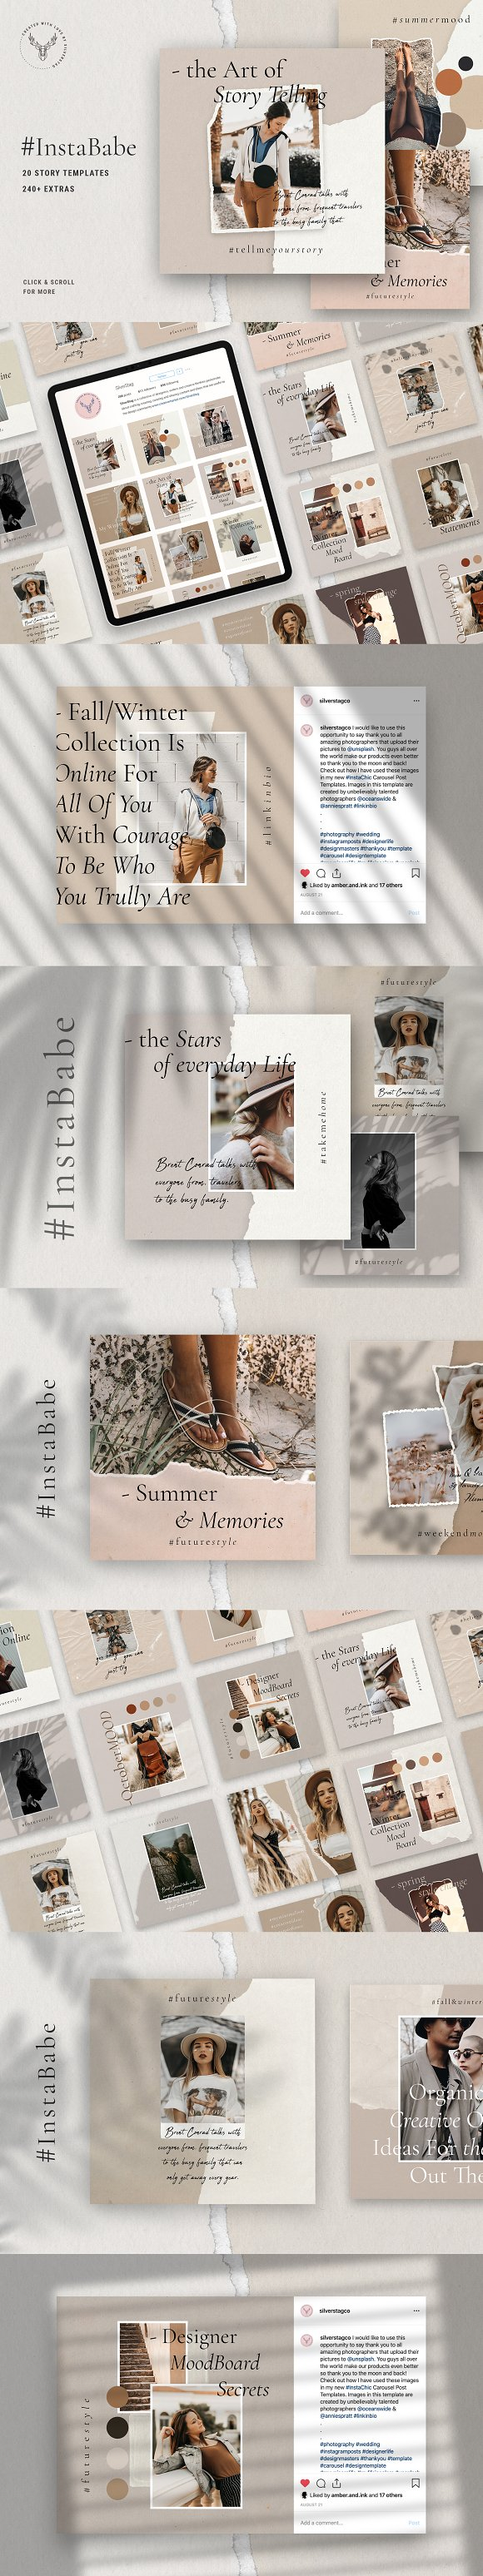 Ultimate Instagram Bundle + Updates in Instagram Templates - product preview 1